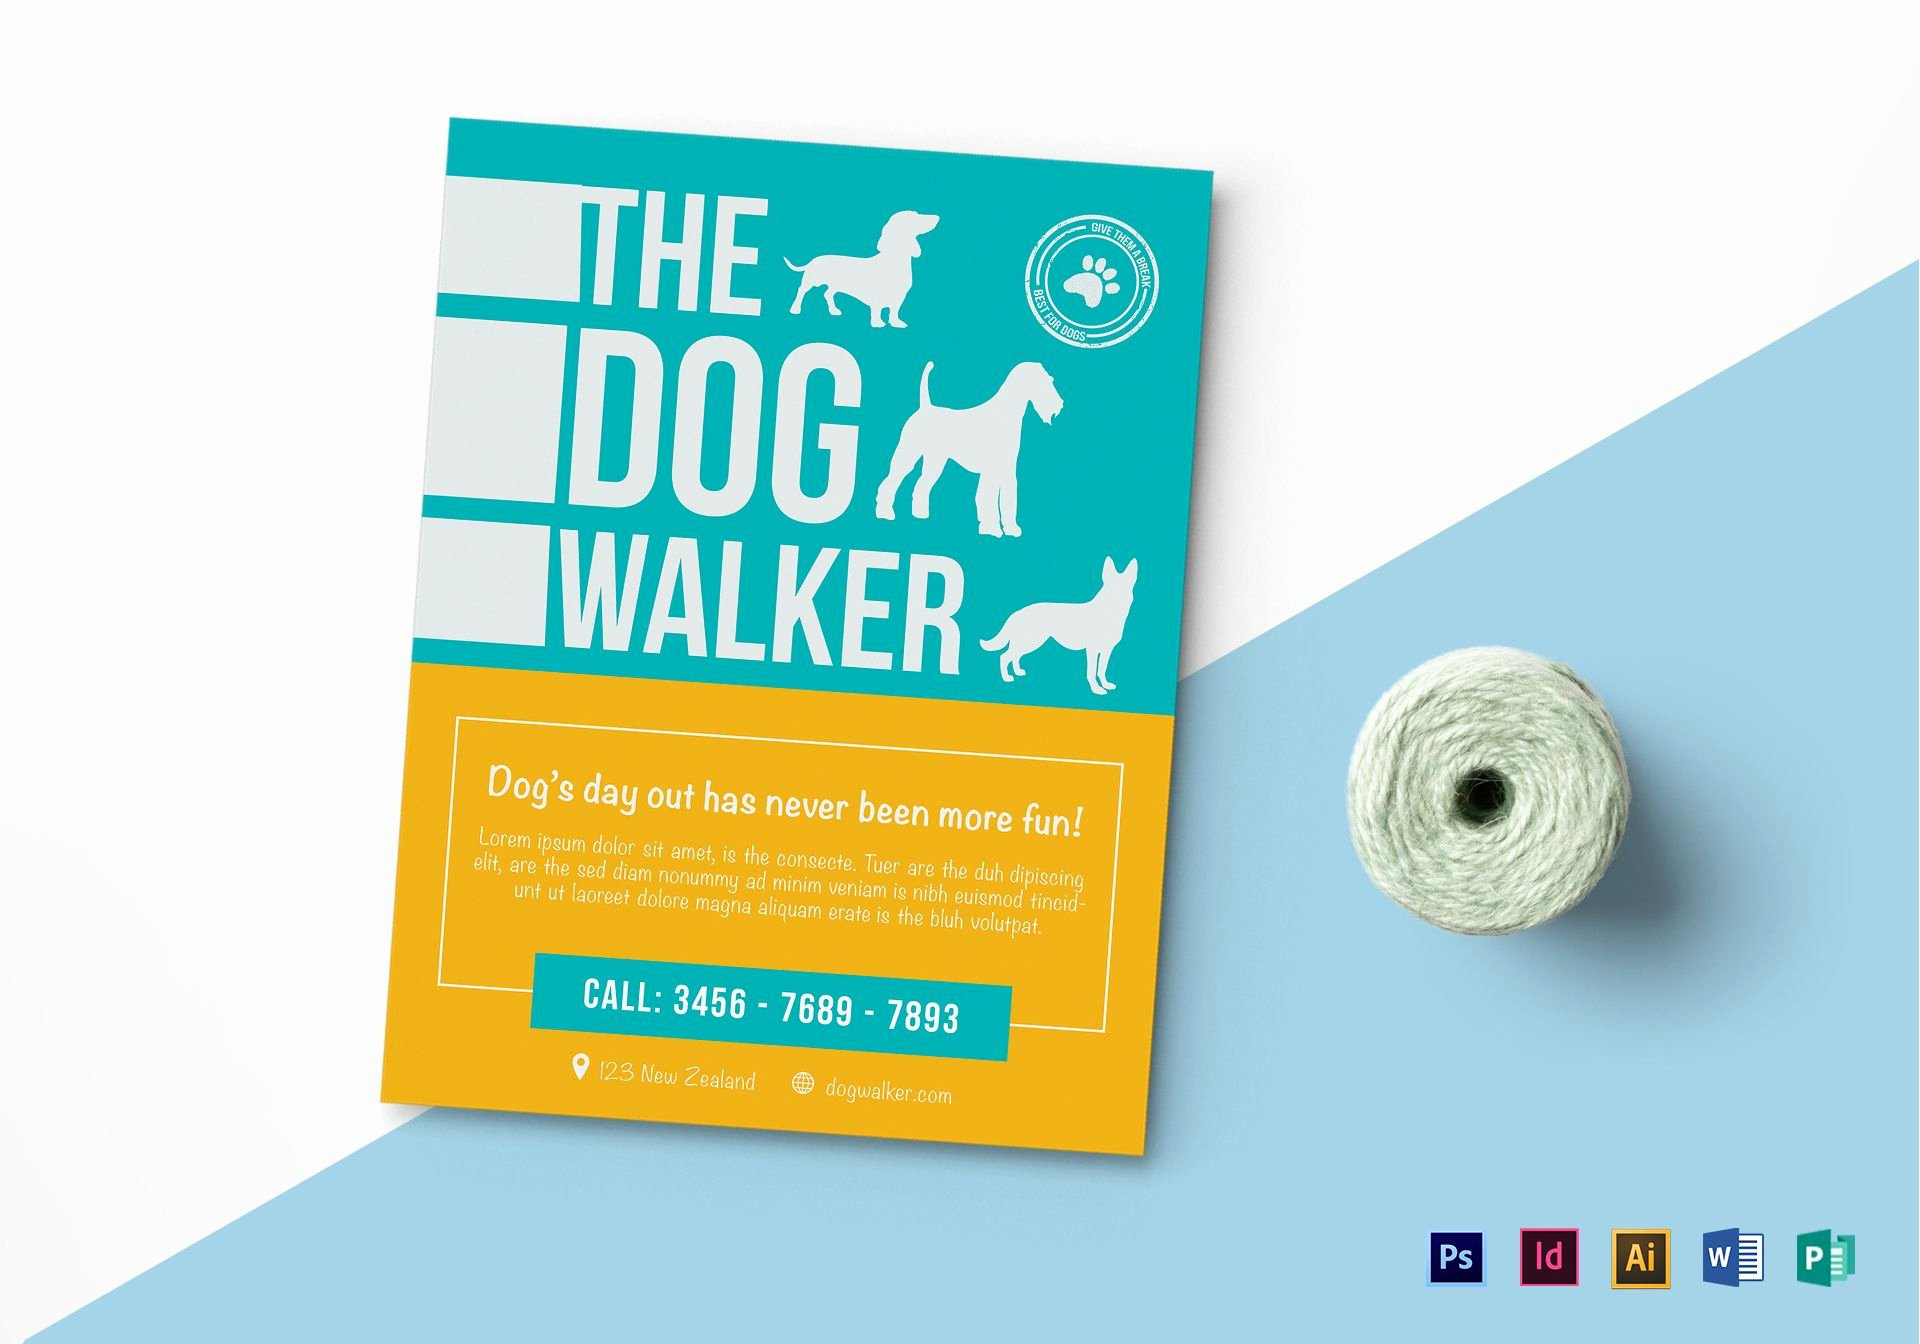 Dog Walking Flyer Template Awesome Dog Walker Flyer Design Template In Psd Word Publisher